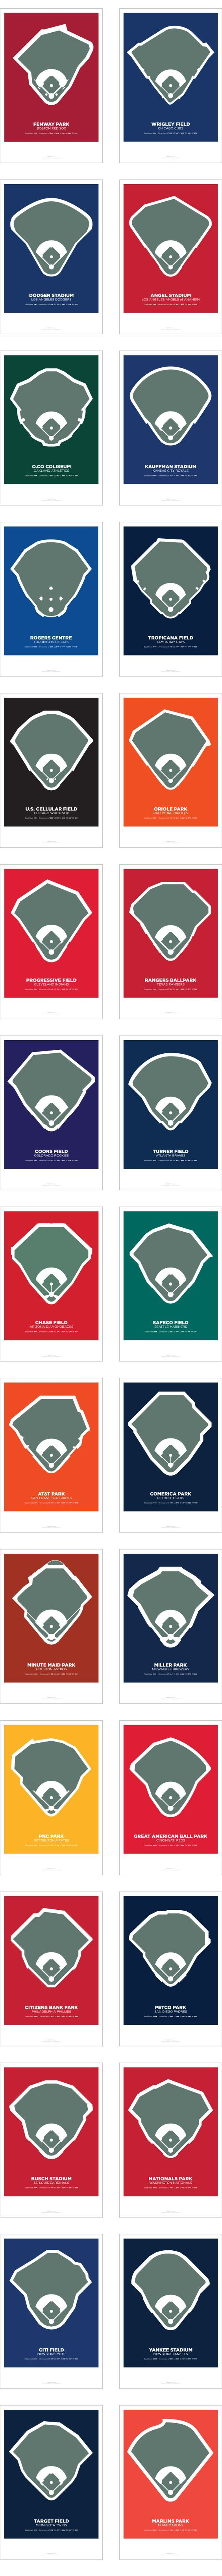 THIRTY81: The Fields of Baseball Poster Series, ReKicked by Lou Spirito — Kickstarter: